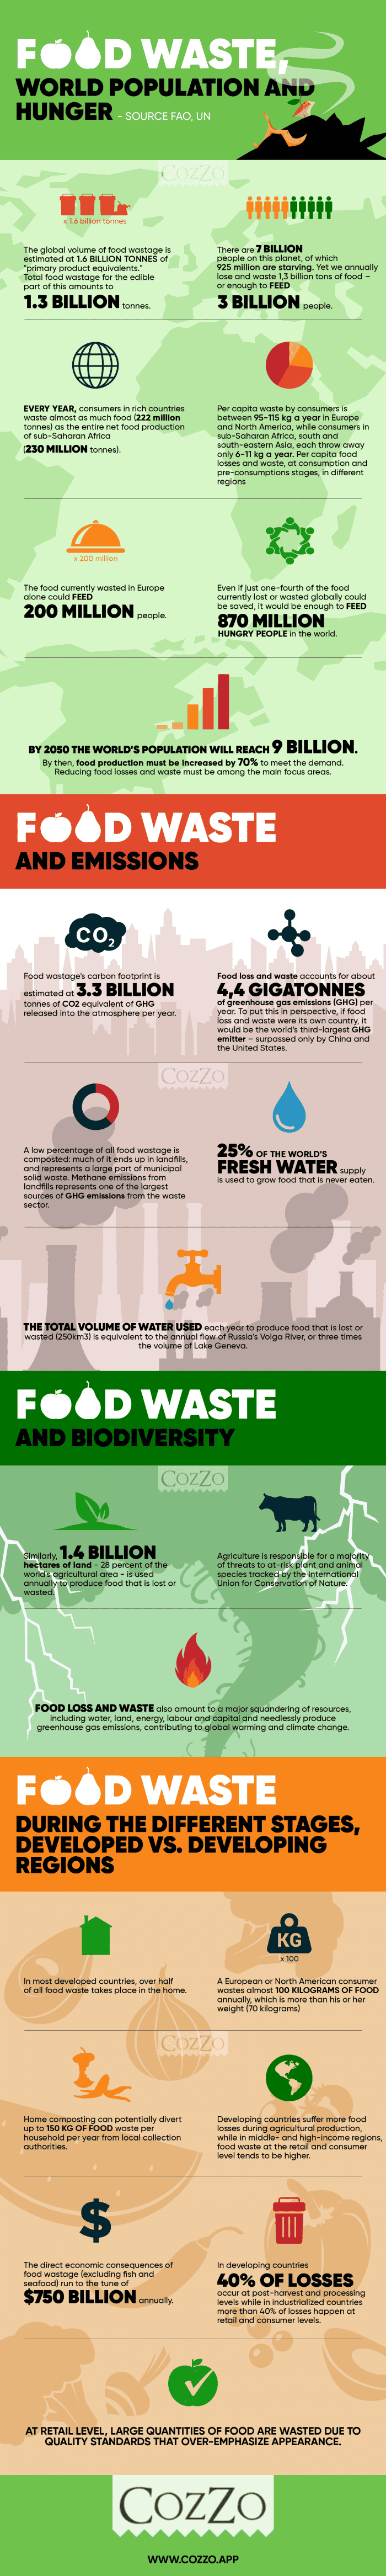 Food Waste, World Population and Hunger #infographic